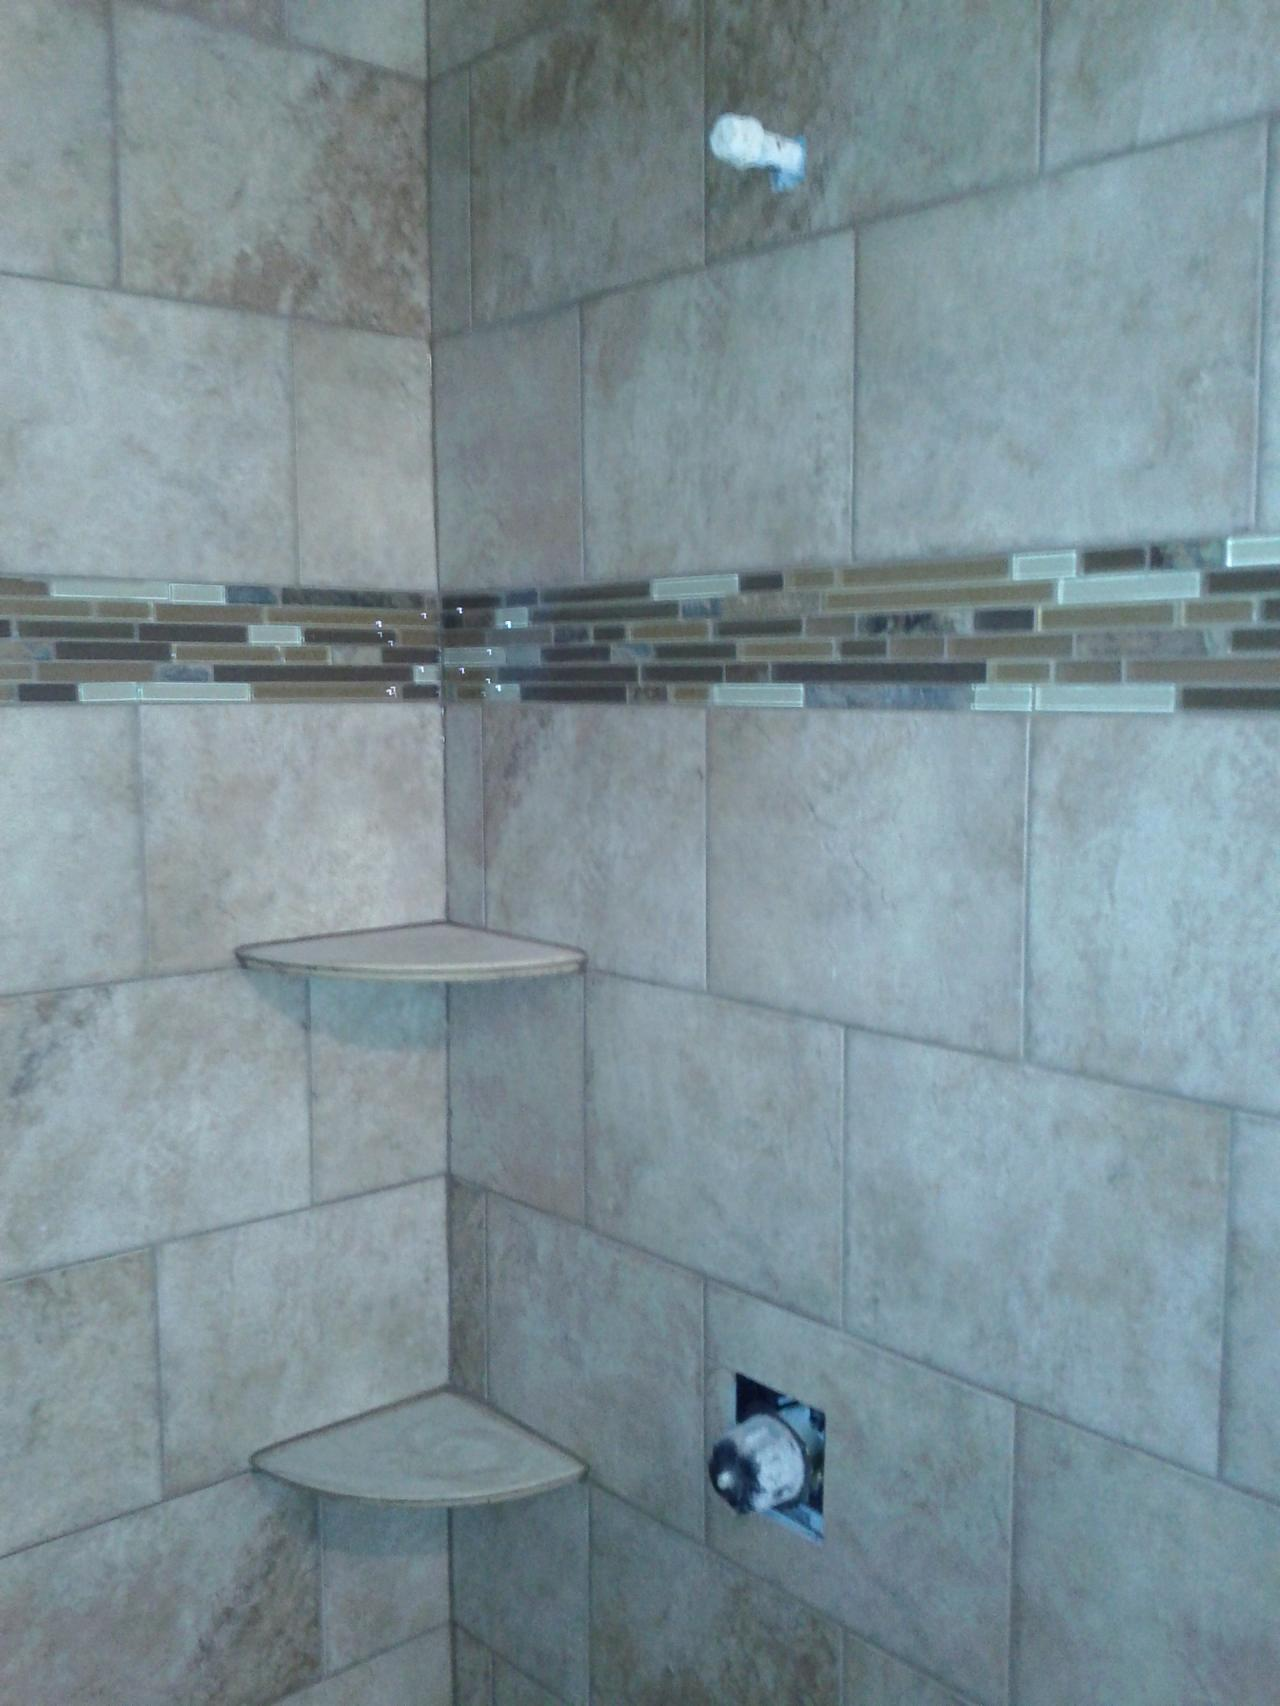 43 magnificent pictures and ideas of modern tile patterns Bathroom tile pictures gallery